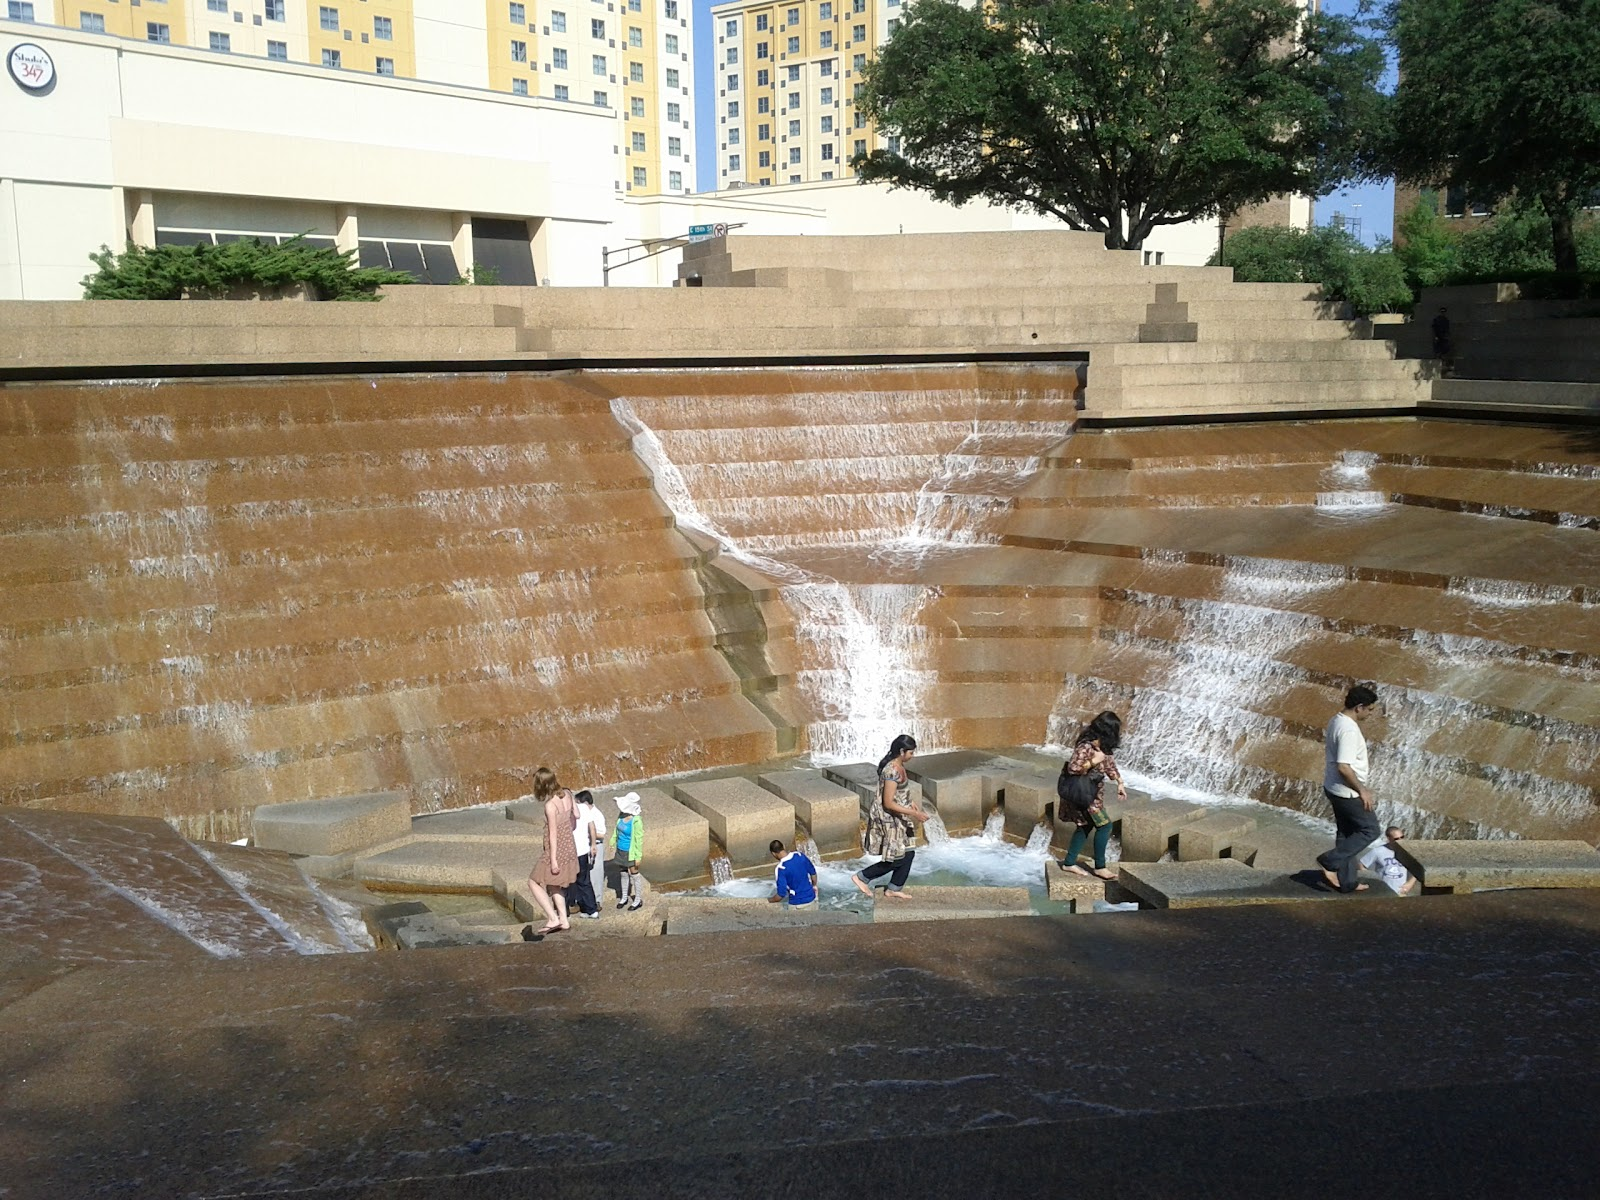 Dallas Fort Worth vacation - IMG_20110611_172607.jpg